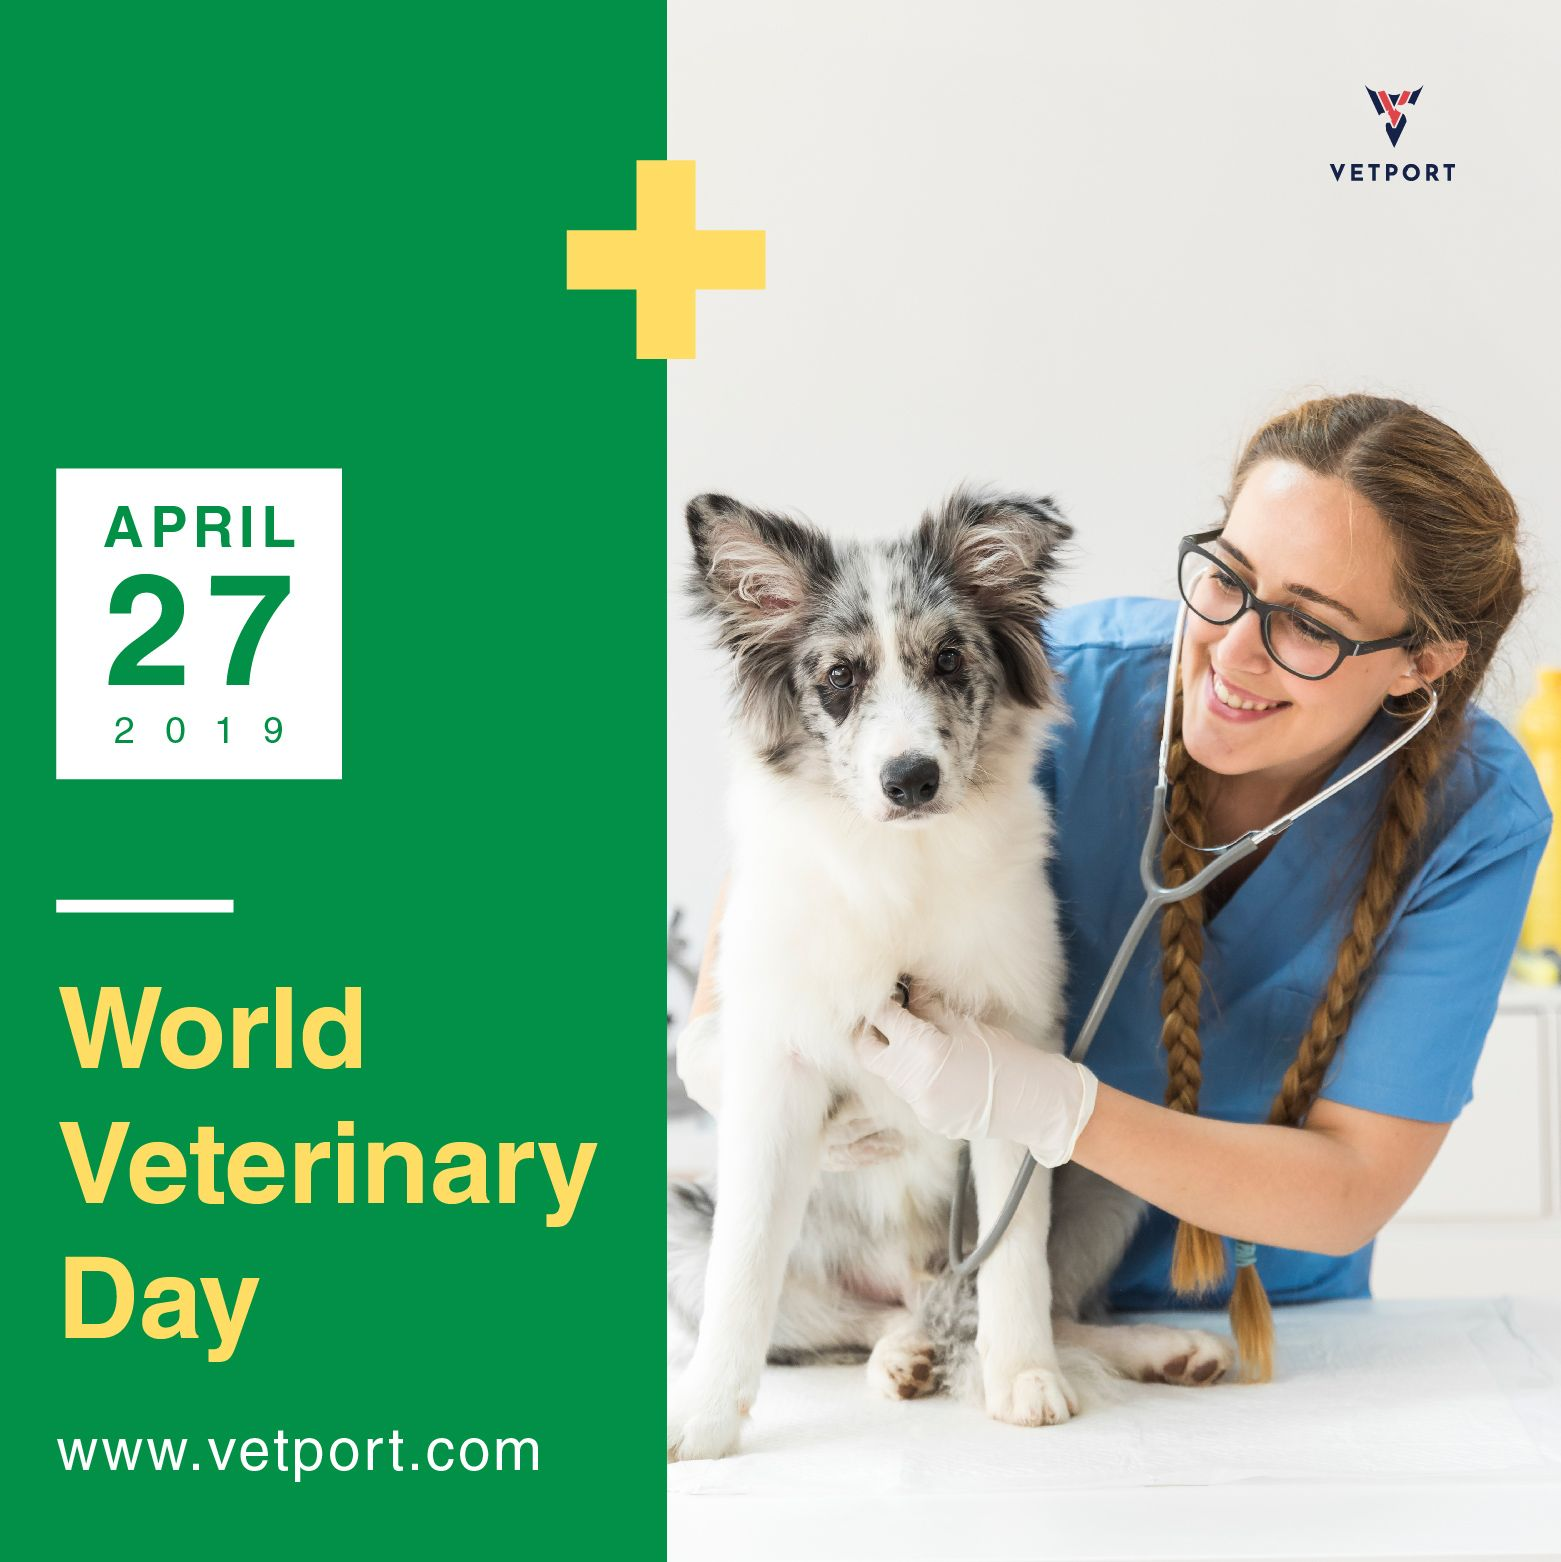 World Veterinary Day April 27 2019 Worldveterinaryday